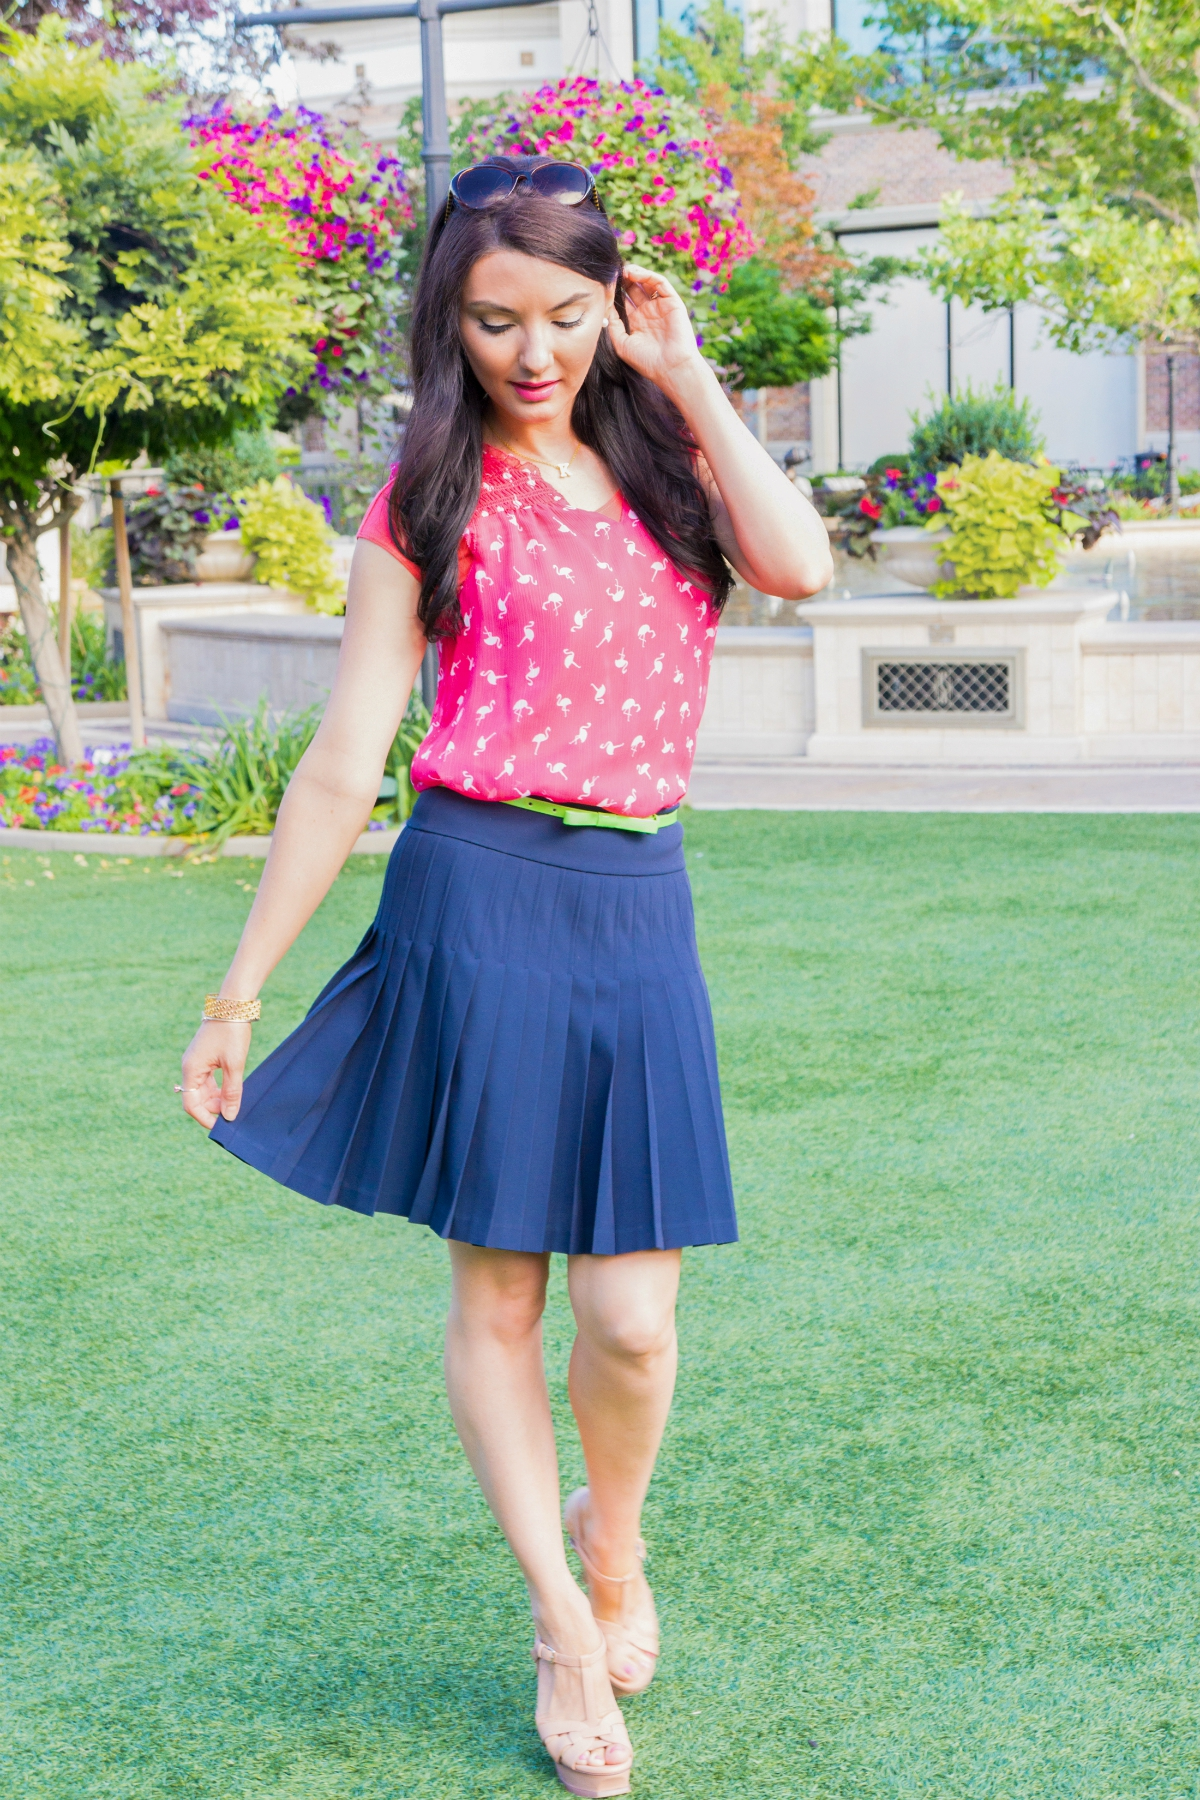 The Sugared Lemon summer chic pink flamingo shirt and pleated skirt